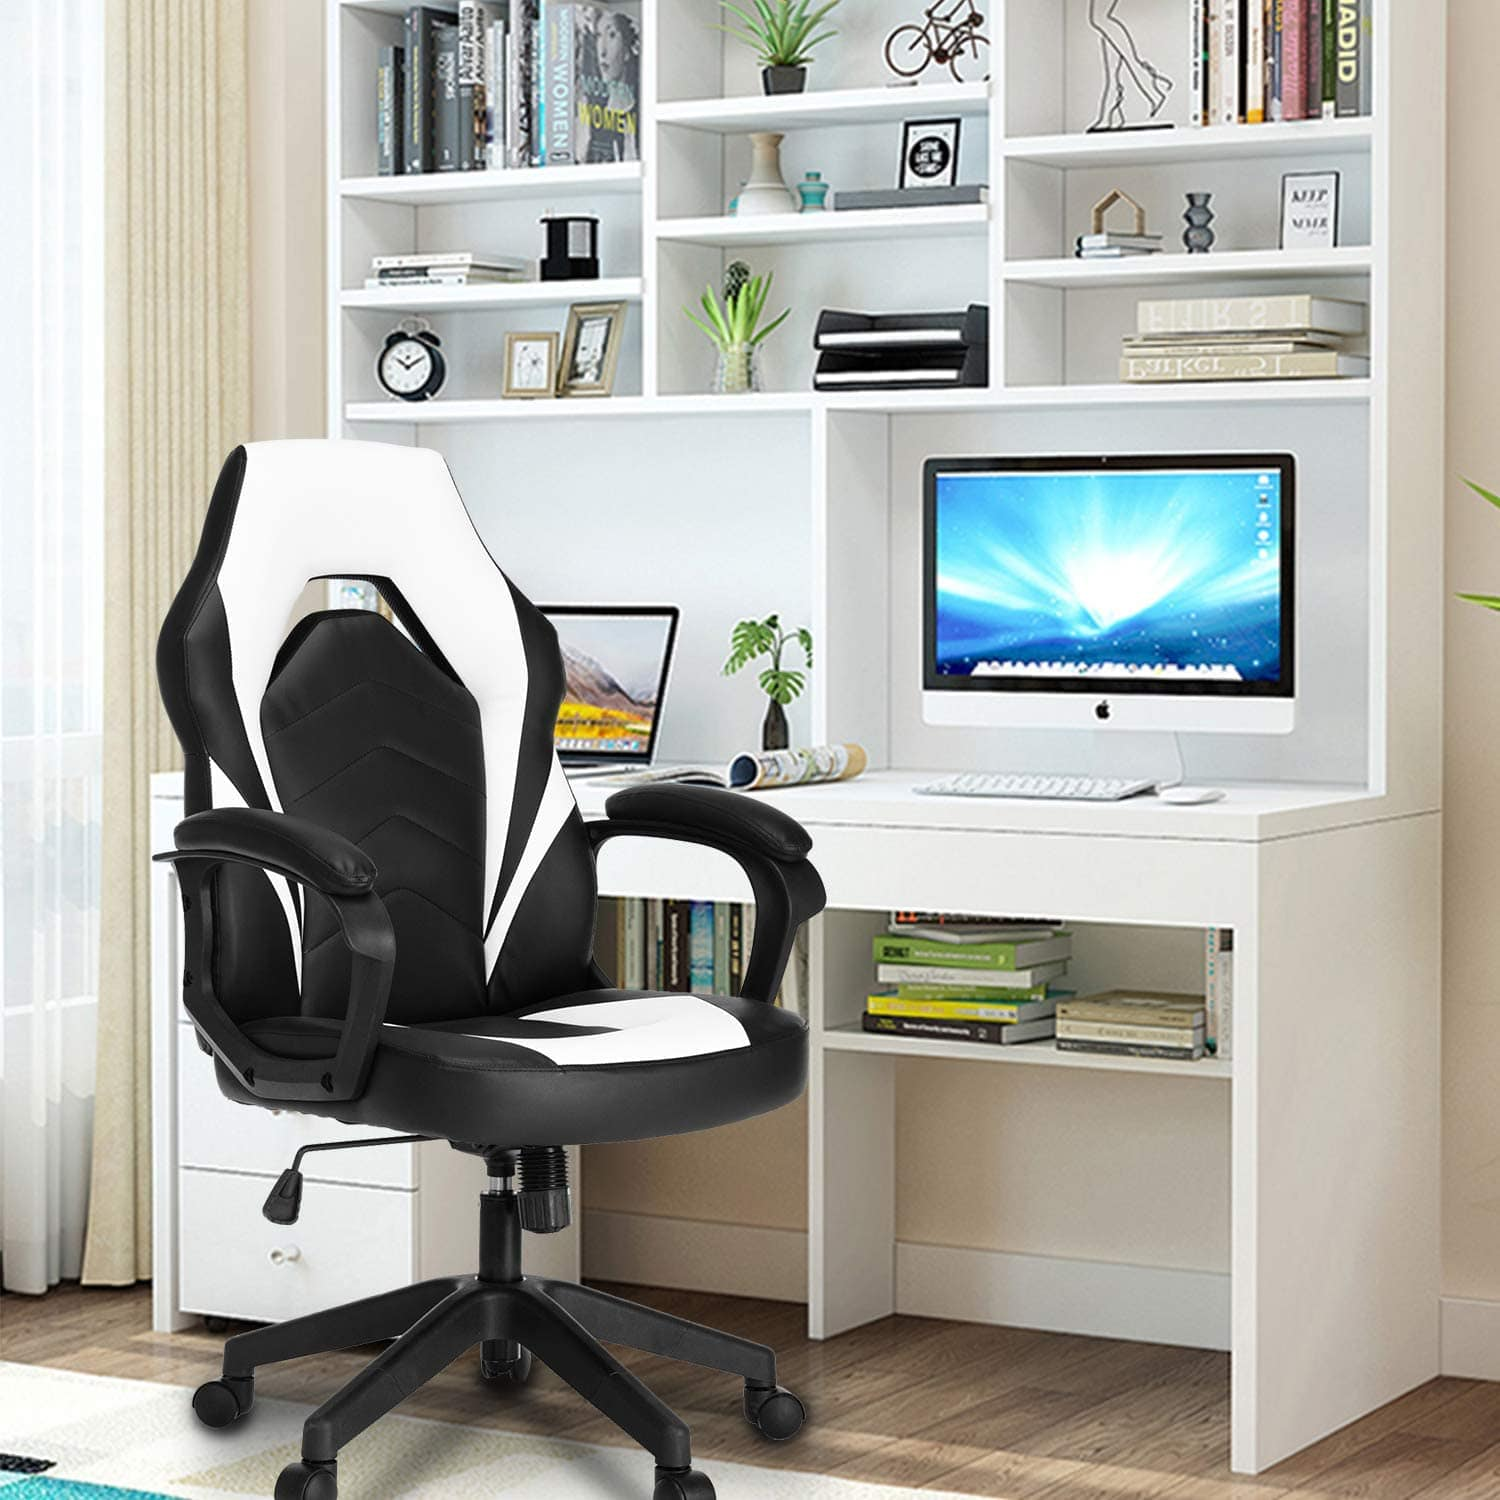 SMUGDESK Racing Gaming Chair Executive Bonded Leather Computer Office Chair with Massage and Padding Armrest White